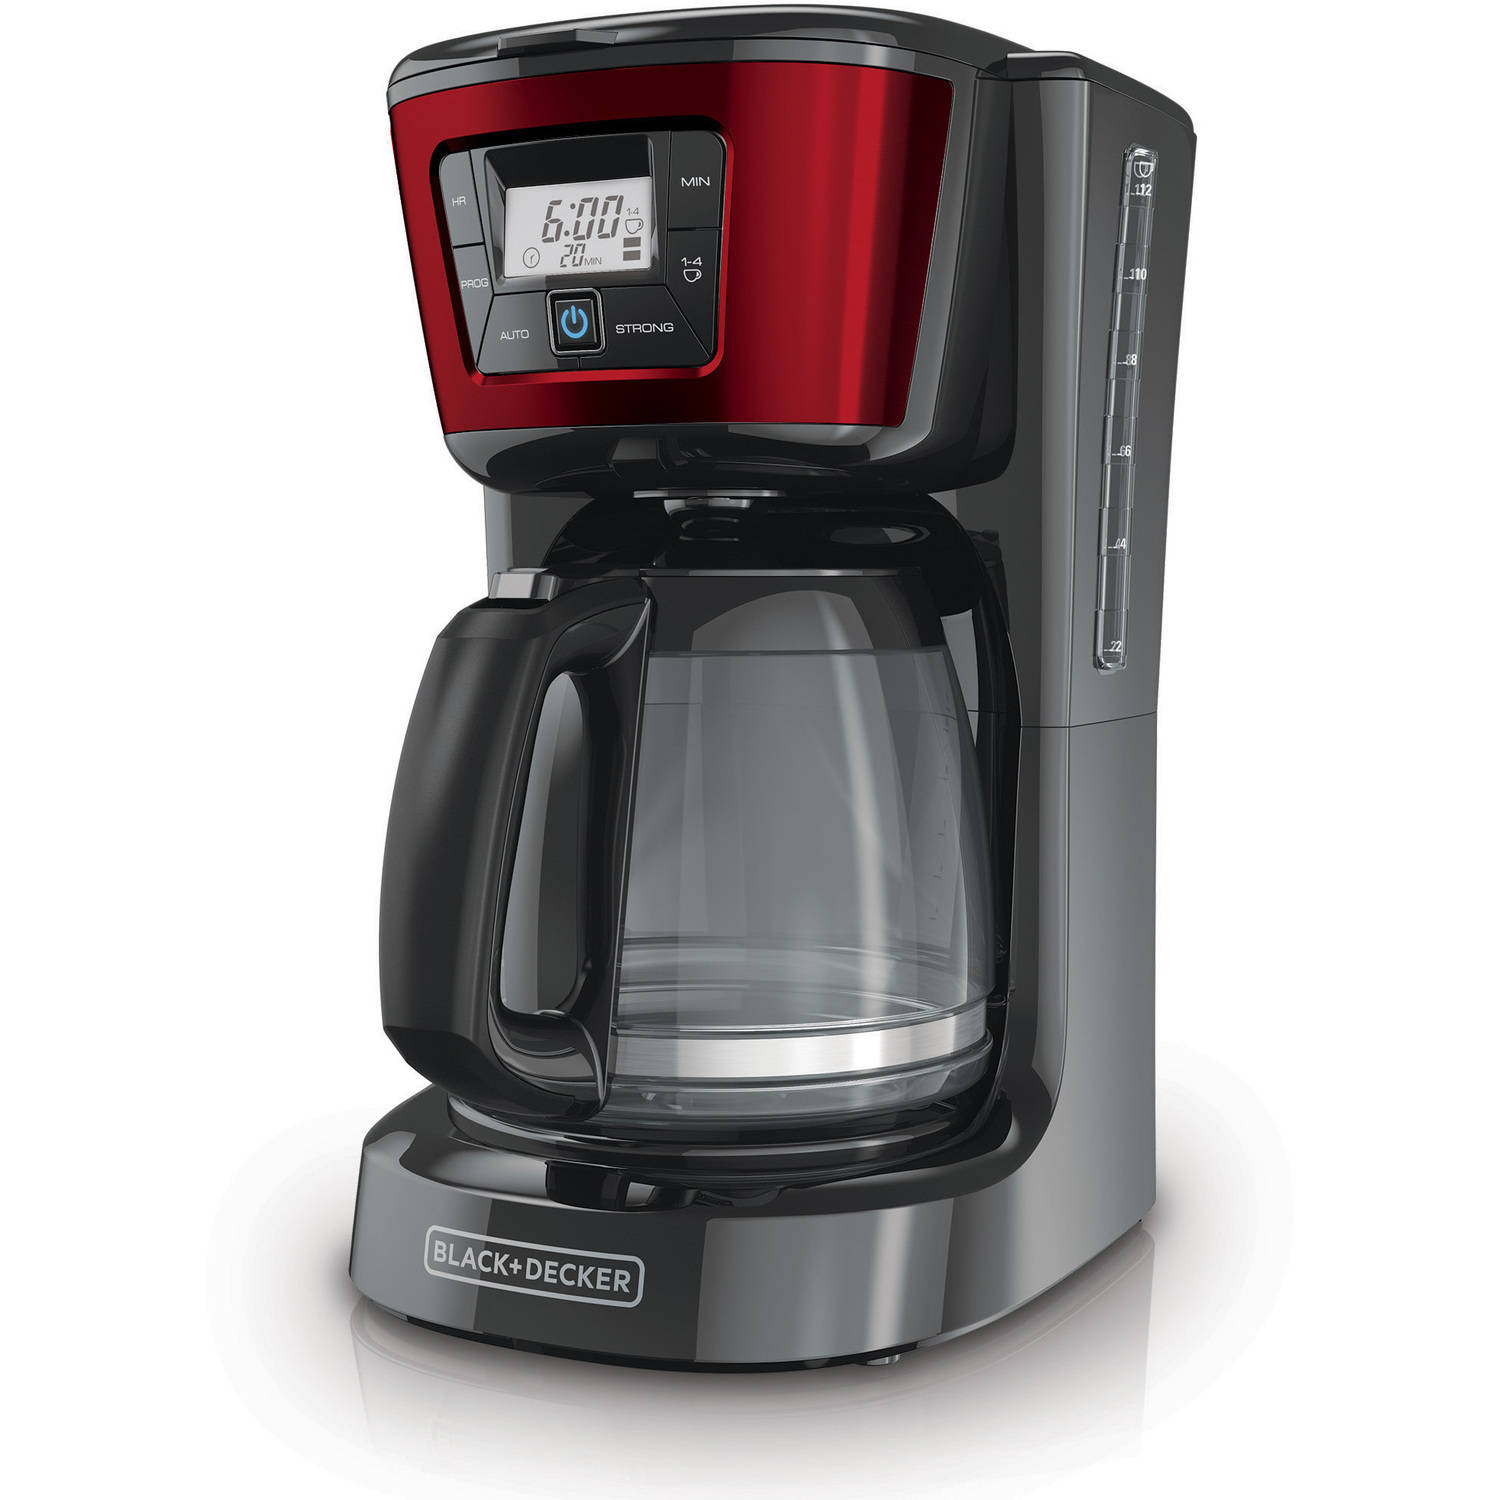 Coffee Maker Black And Decker 12 Cup : TOP QUALITY Black and Decker 12-Cup Programmable Coffee Maker Thermal Carafe eBay